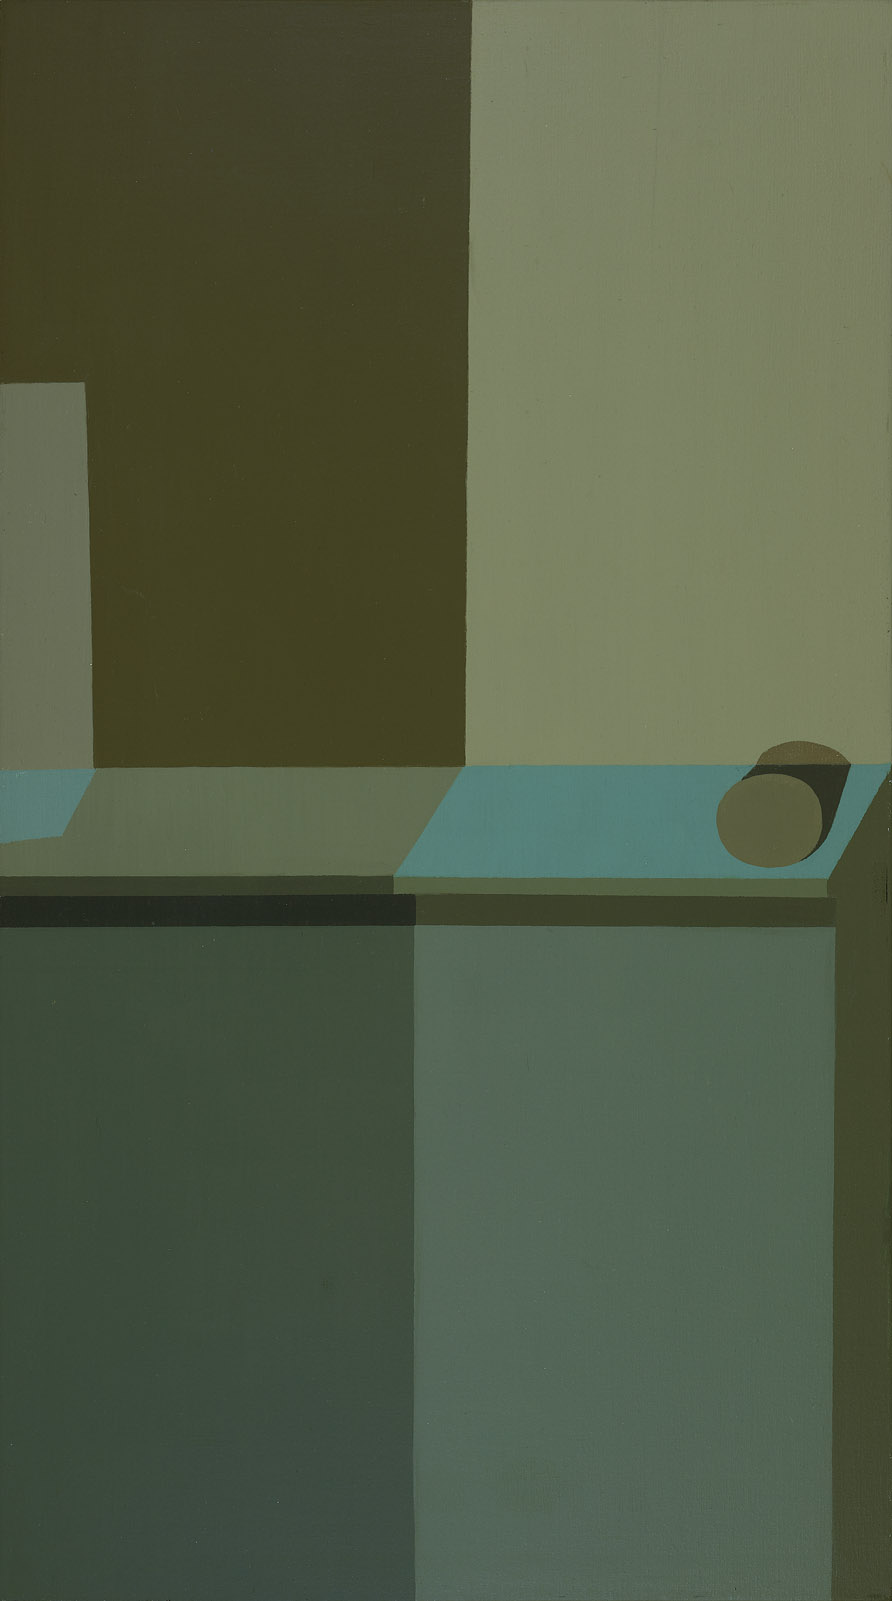 Untitled , 1961  oil on canvas 36 x 20 inches; 91.4 x 50.8 centimeters